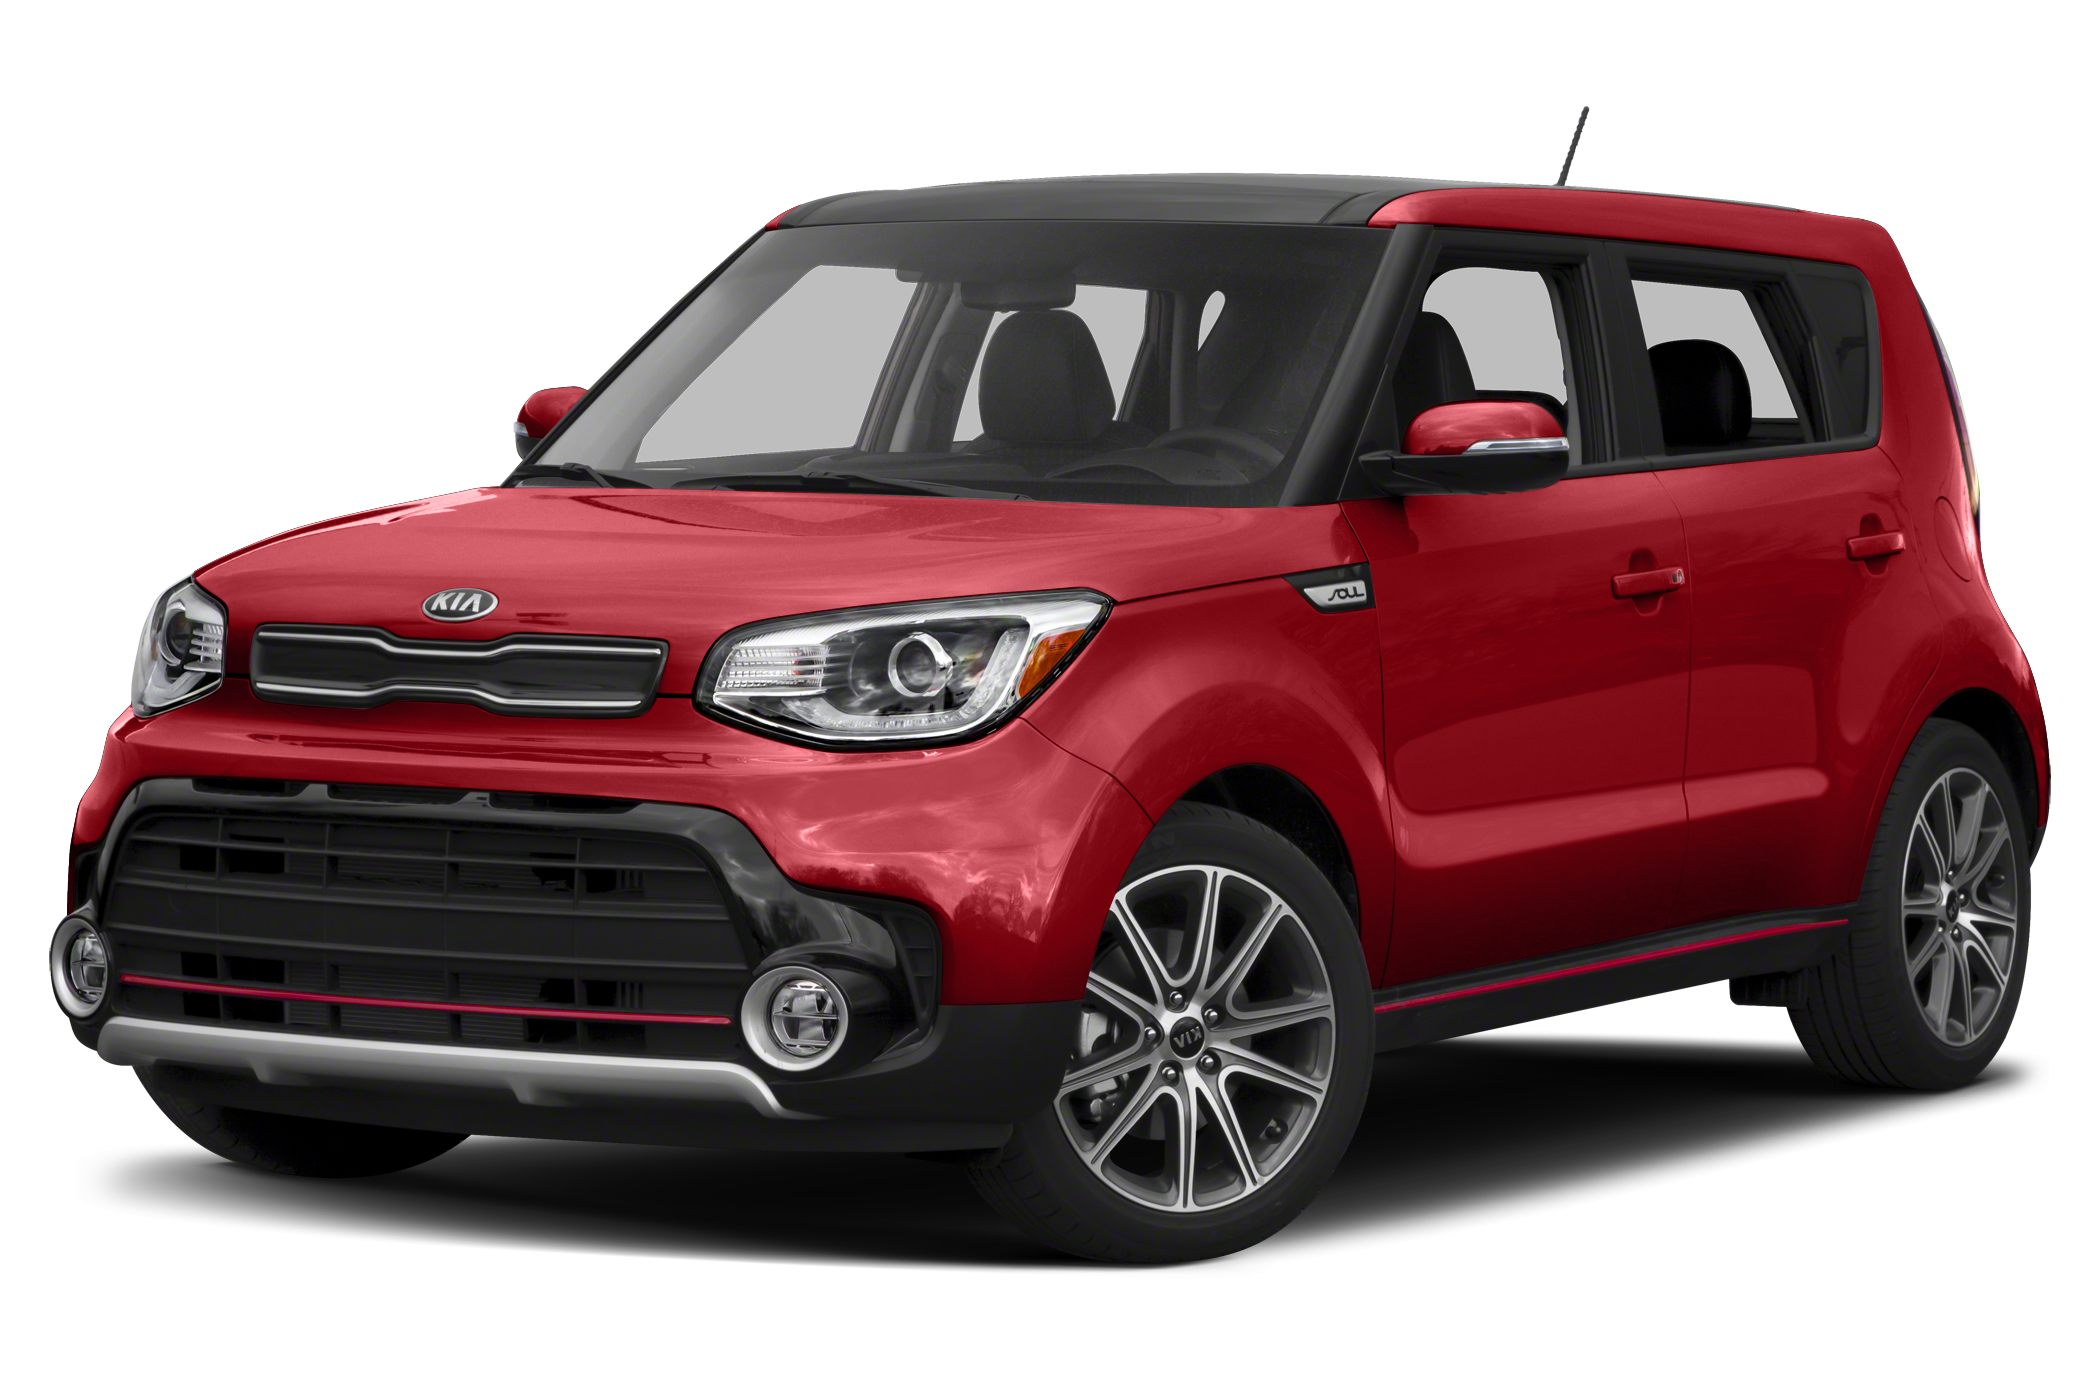 Kia Soul Safety Rating >> 2018 Kia Soul Specs, Safety Rating & MPG - CarsDirect